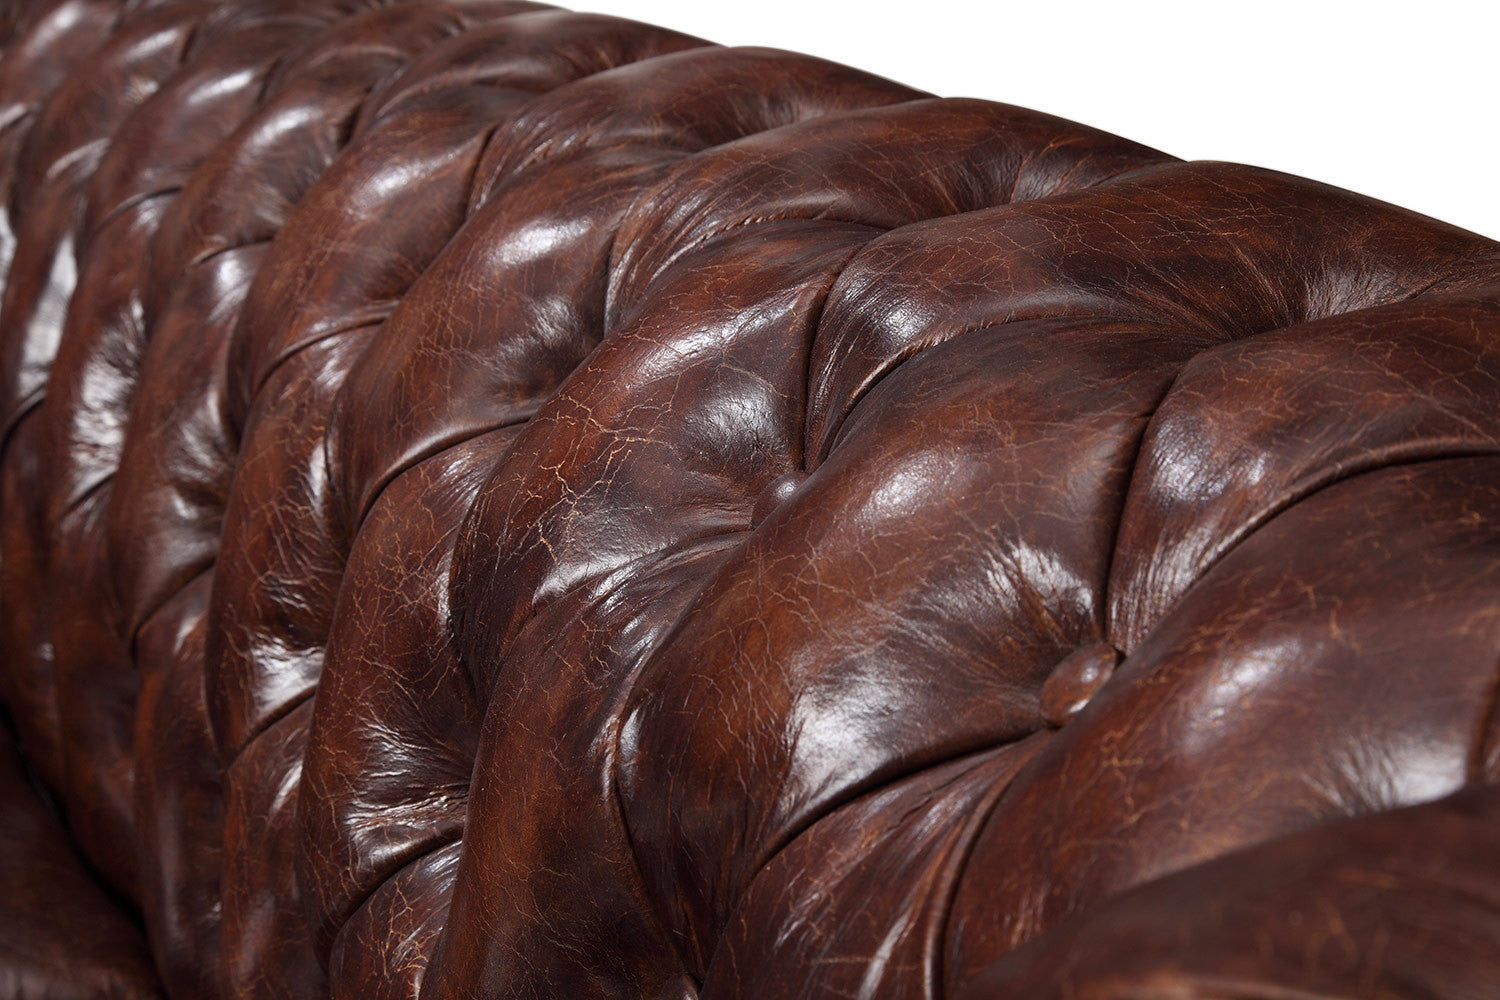 e12a069f734f Tufted backrest of the Original Chesterfield Loveseat